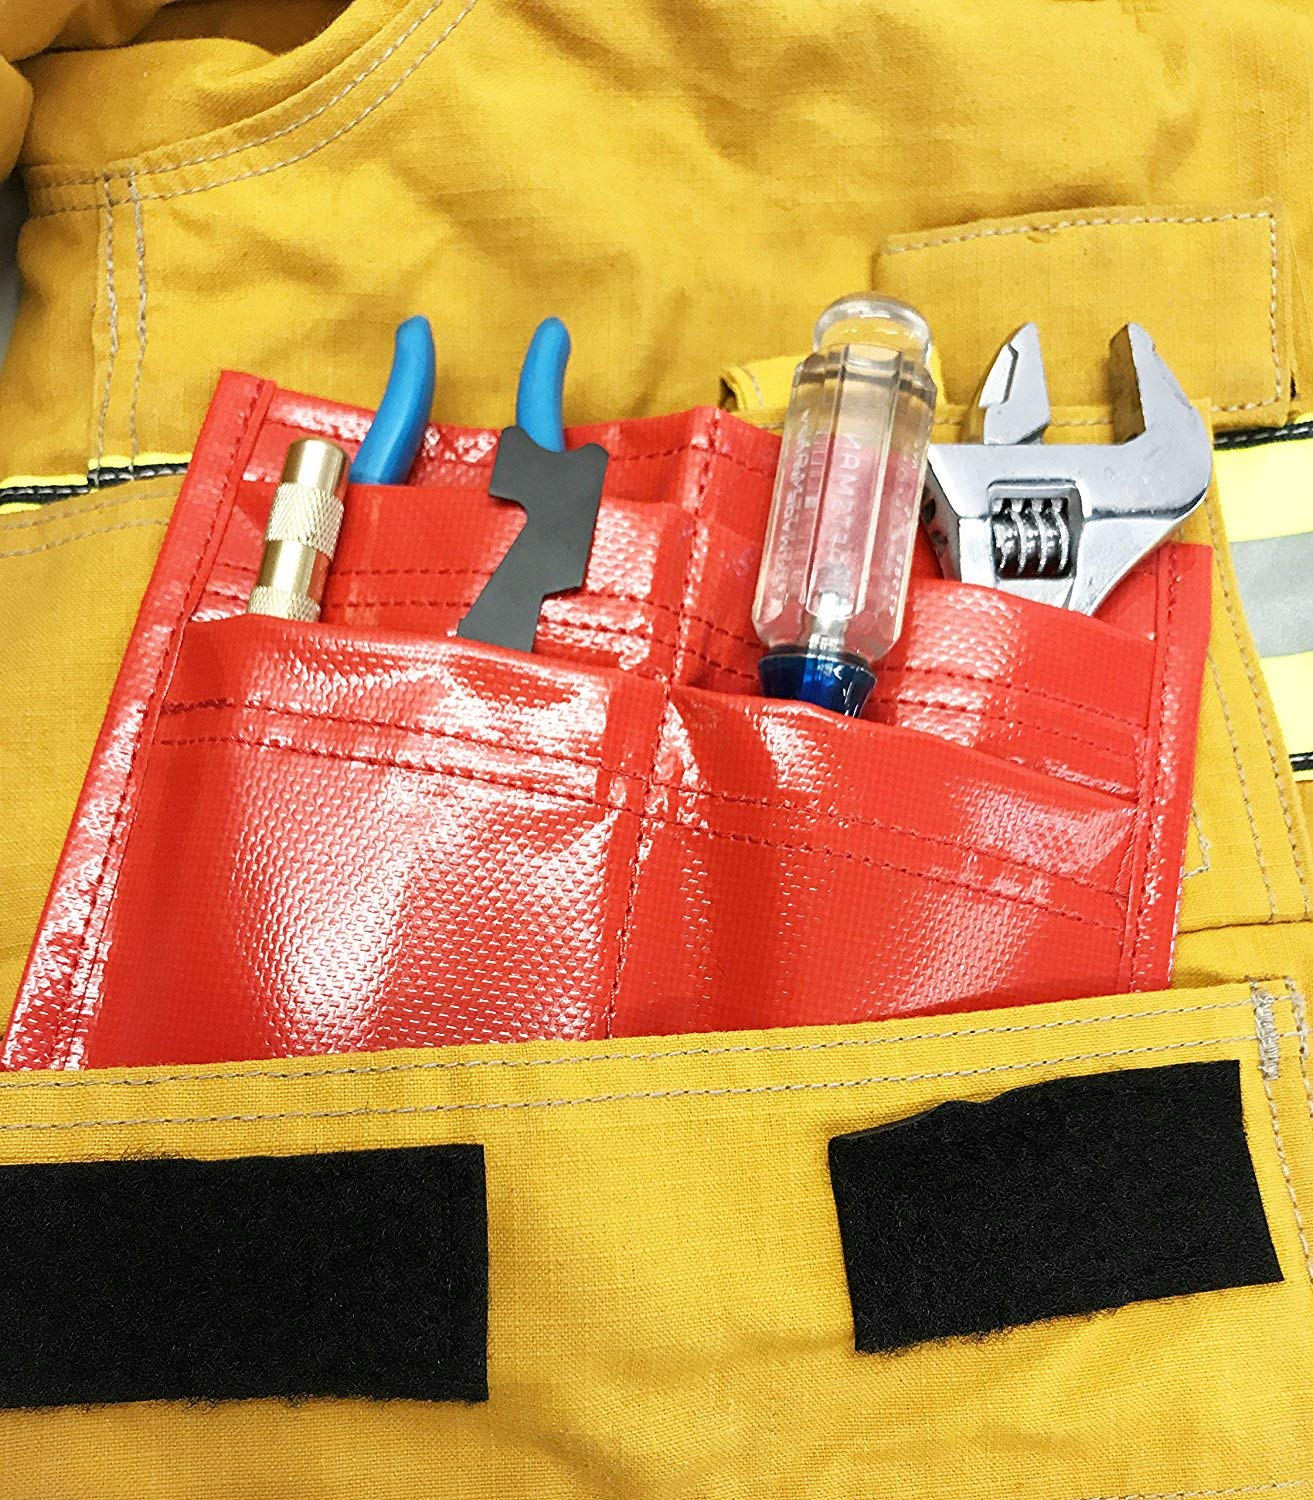 Firefighter Tool Pouch 4-Pocket Tool Holder - Fits inside Turnout-Bunker Pockets